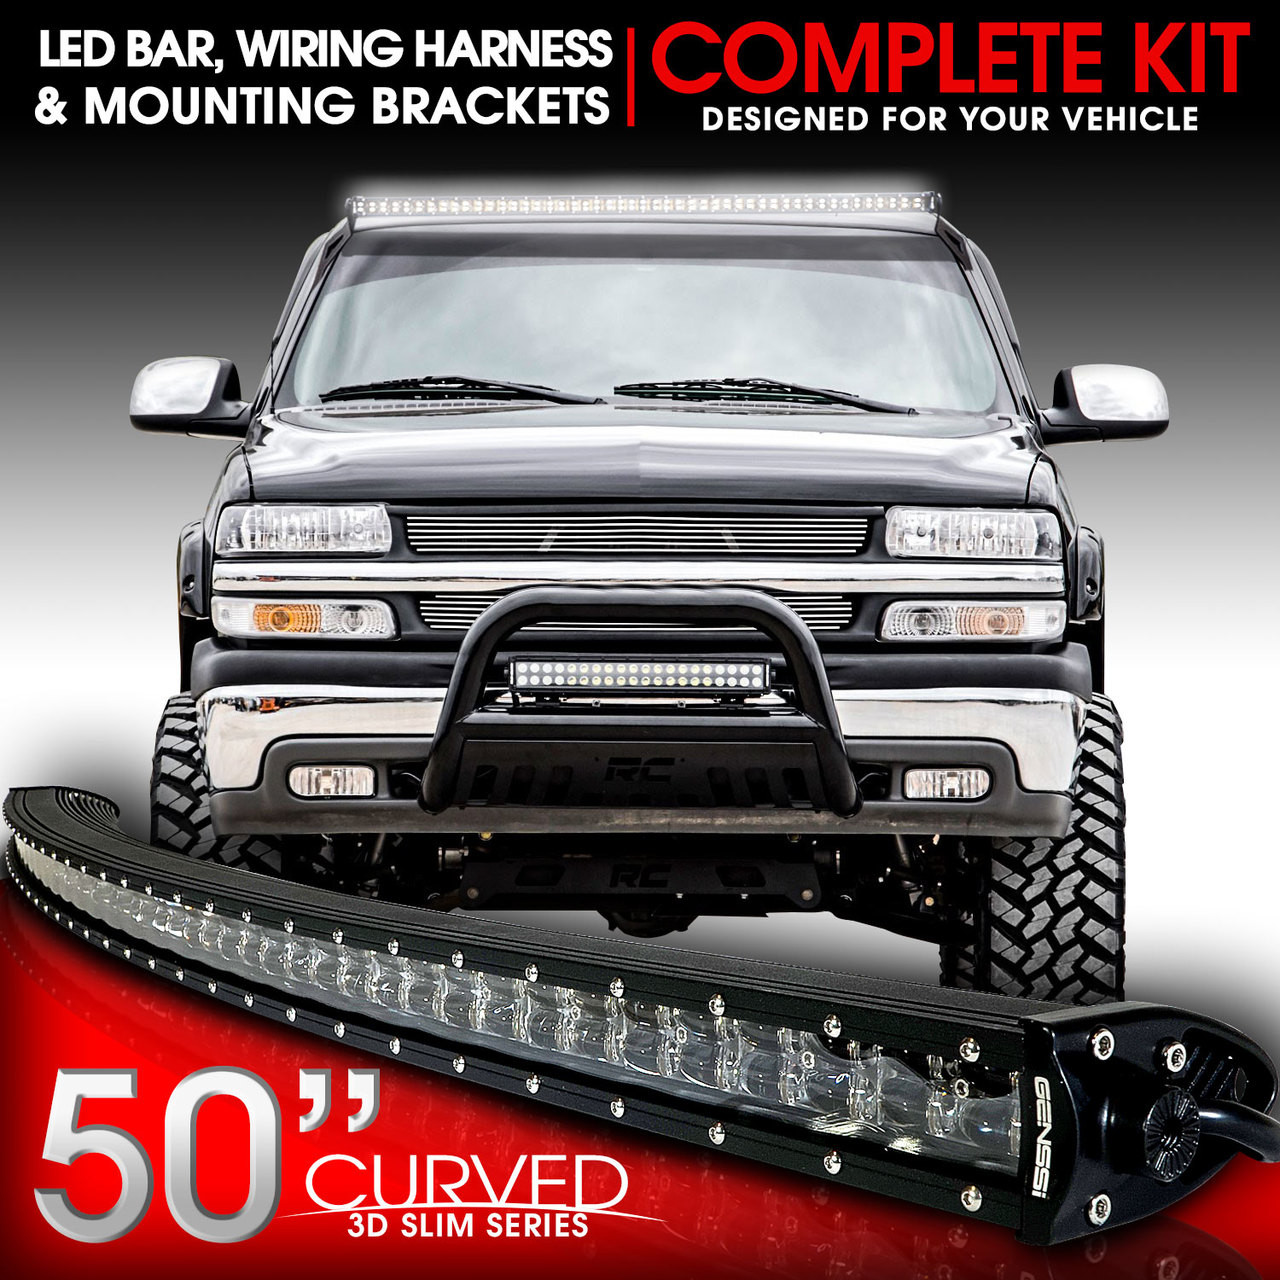 hight resolution of led light bar curved 288w 50 inches bracket wiring harness kit for 2006 silverado light wiring harness